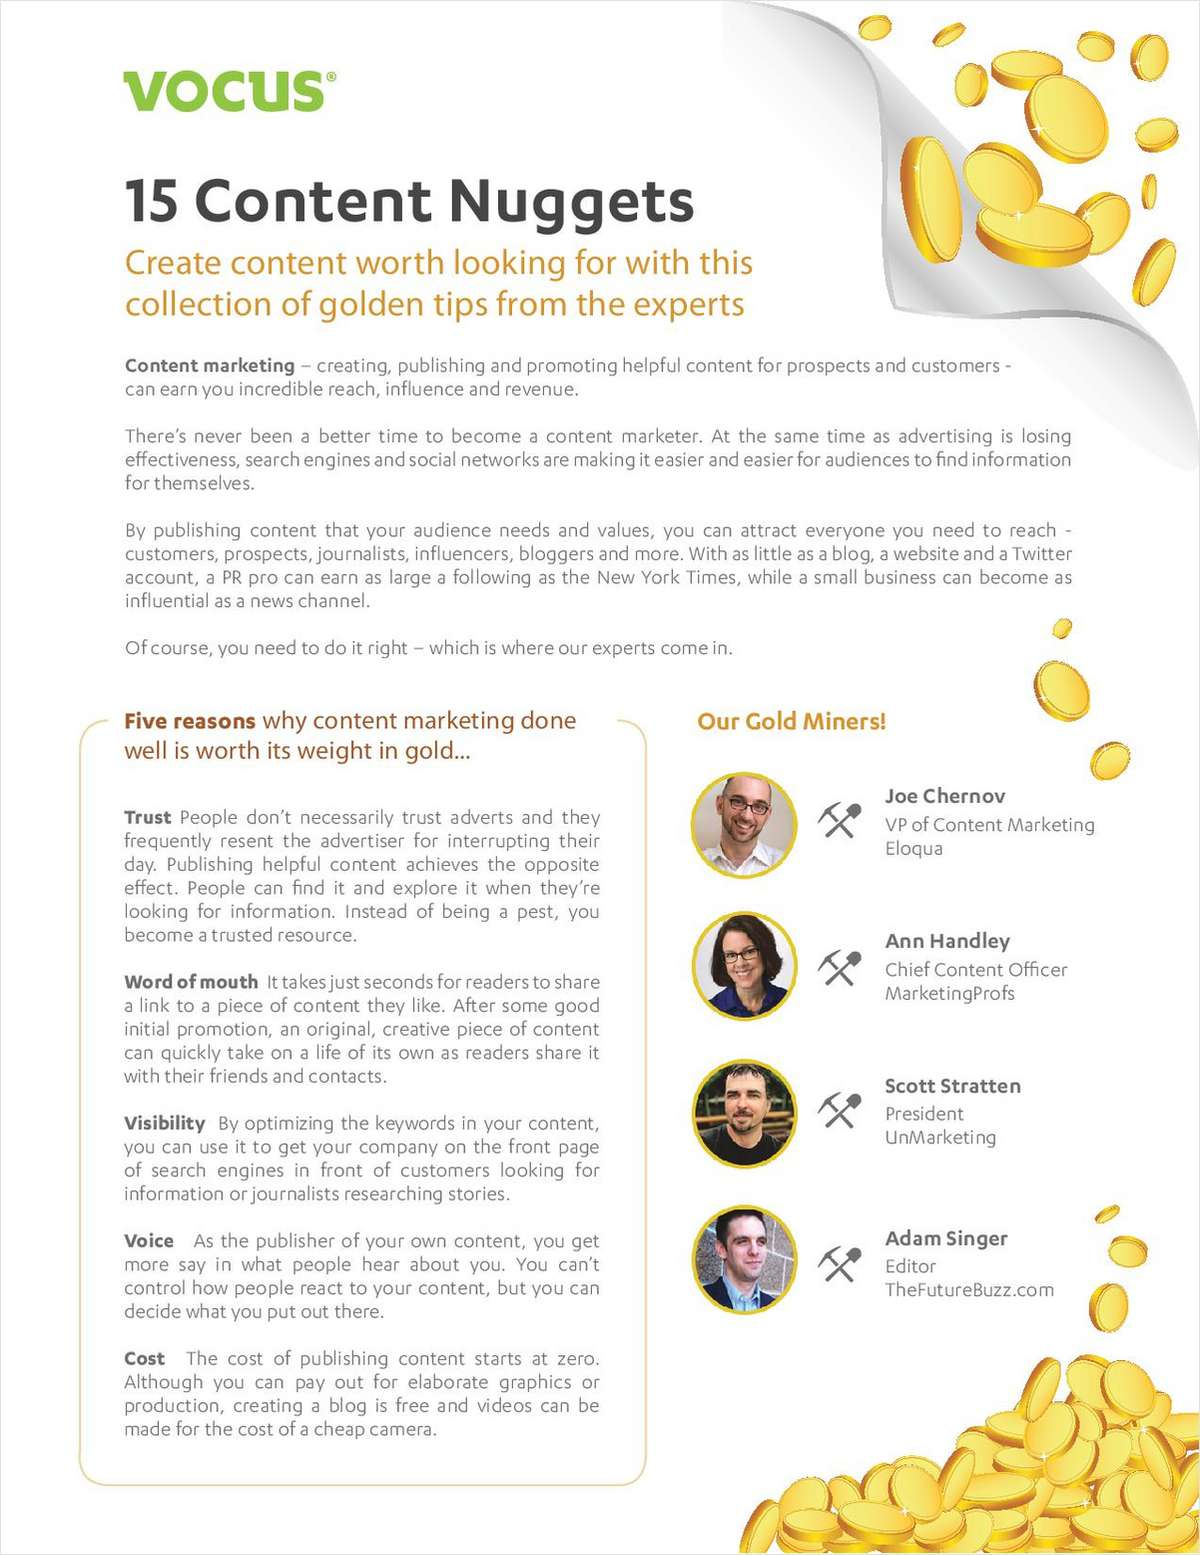 Create Content Worth Looking For With This Collection of 15 Golden Tips From the Experts